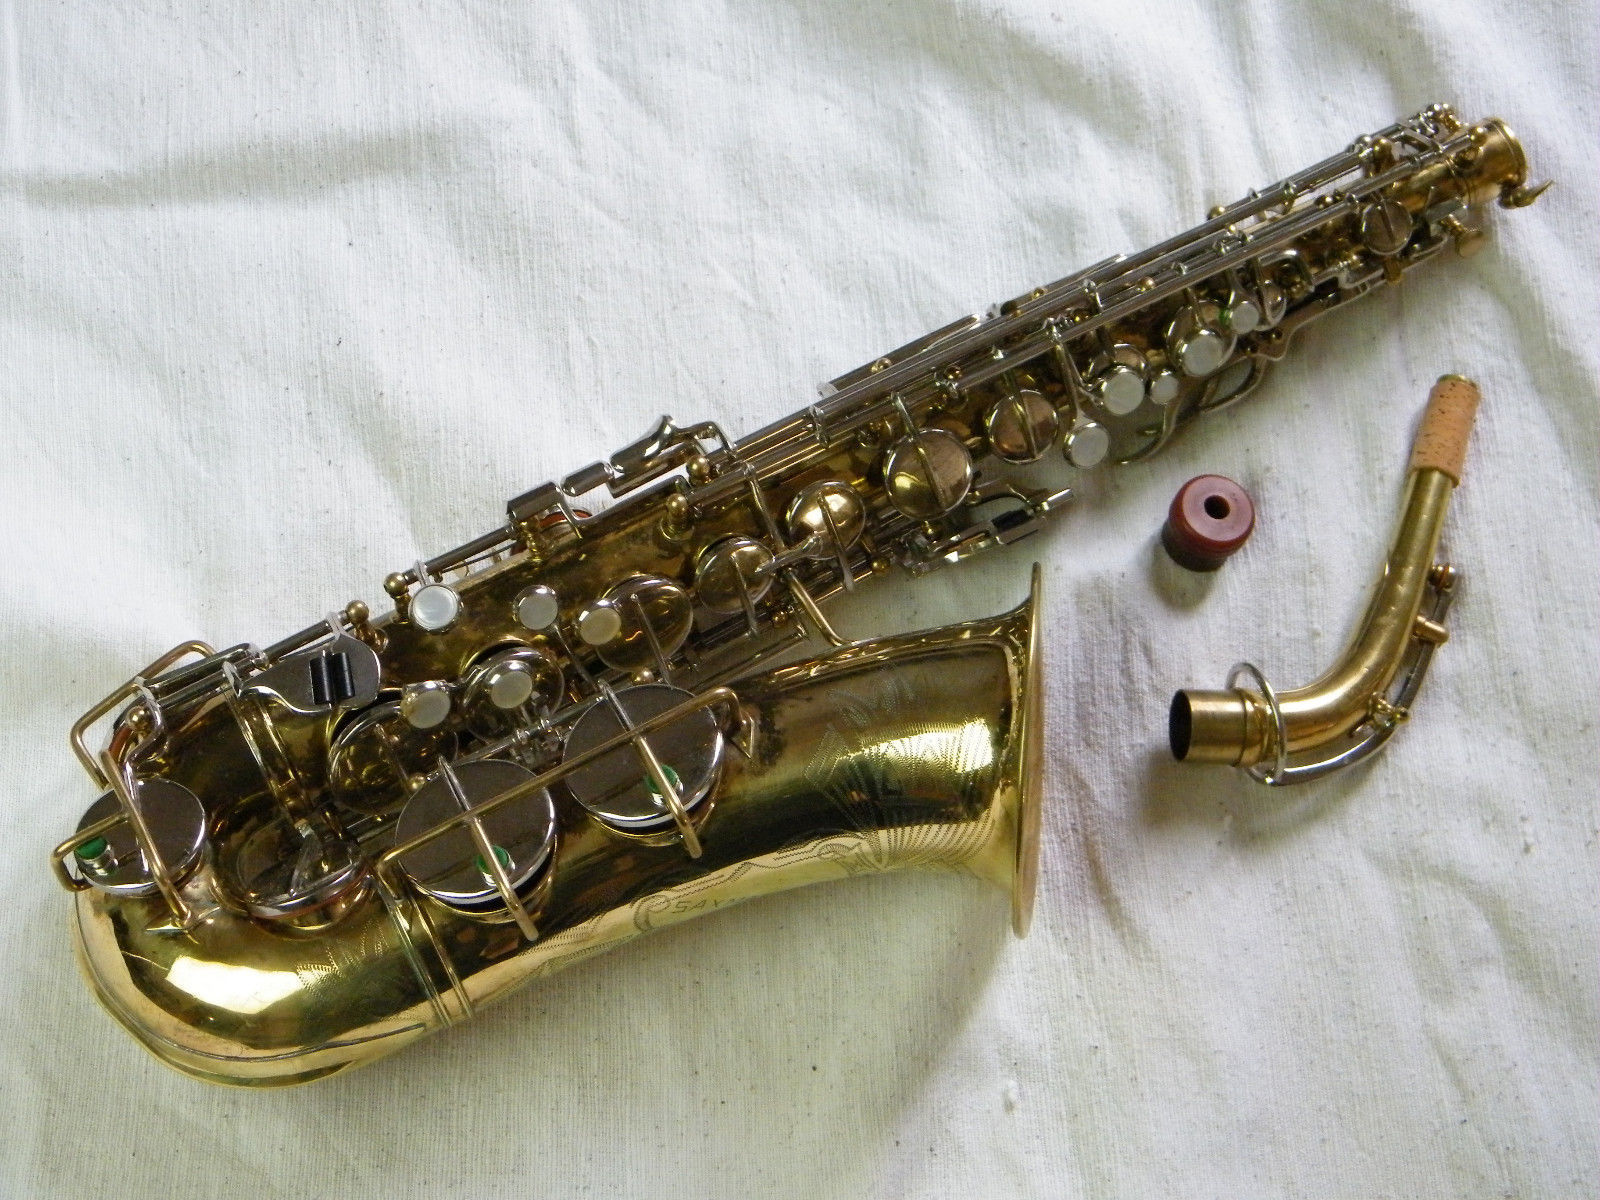 Primary image for Saxmaster (Weltklang) Saxo Alto (RTH) - SAXOPHONE SAXOPHON